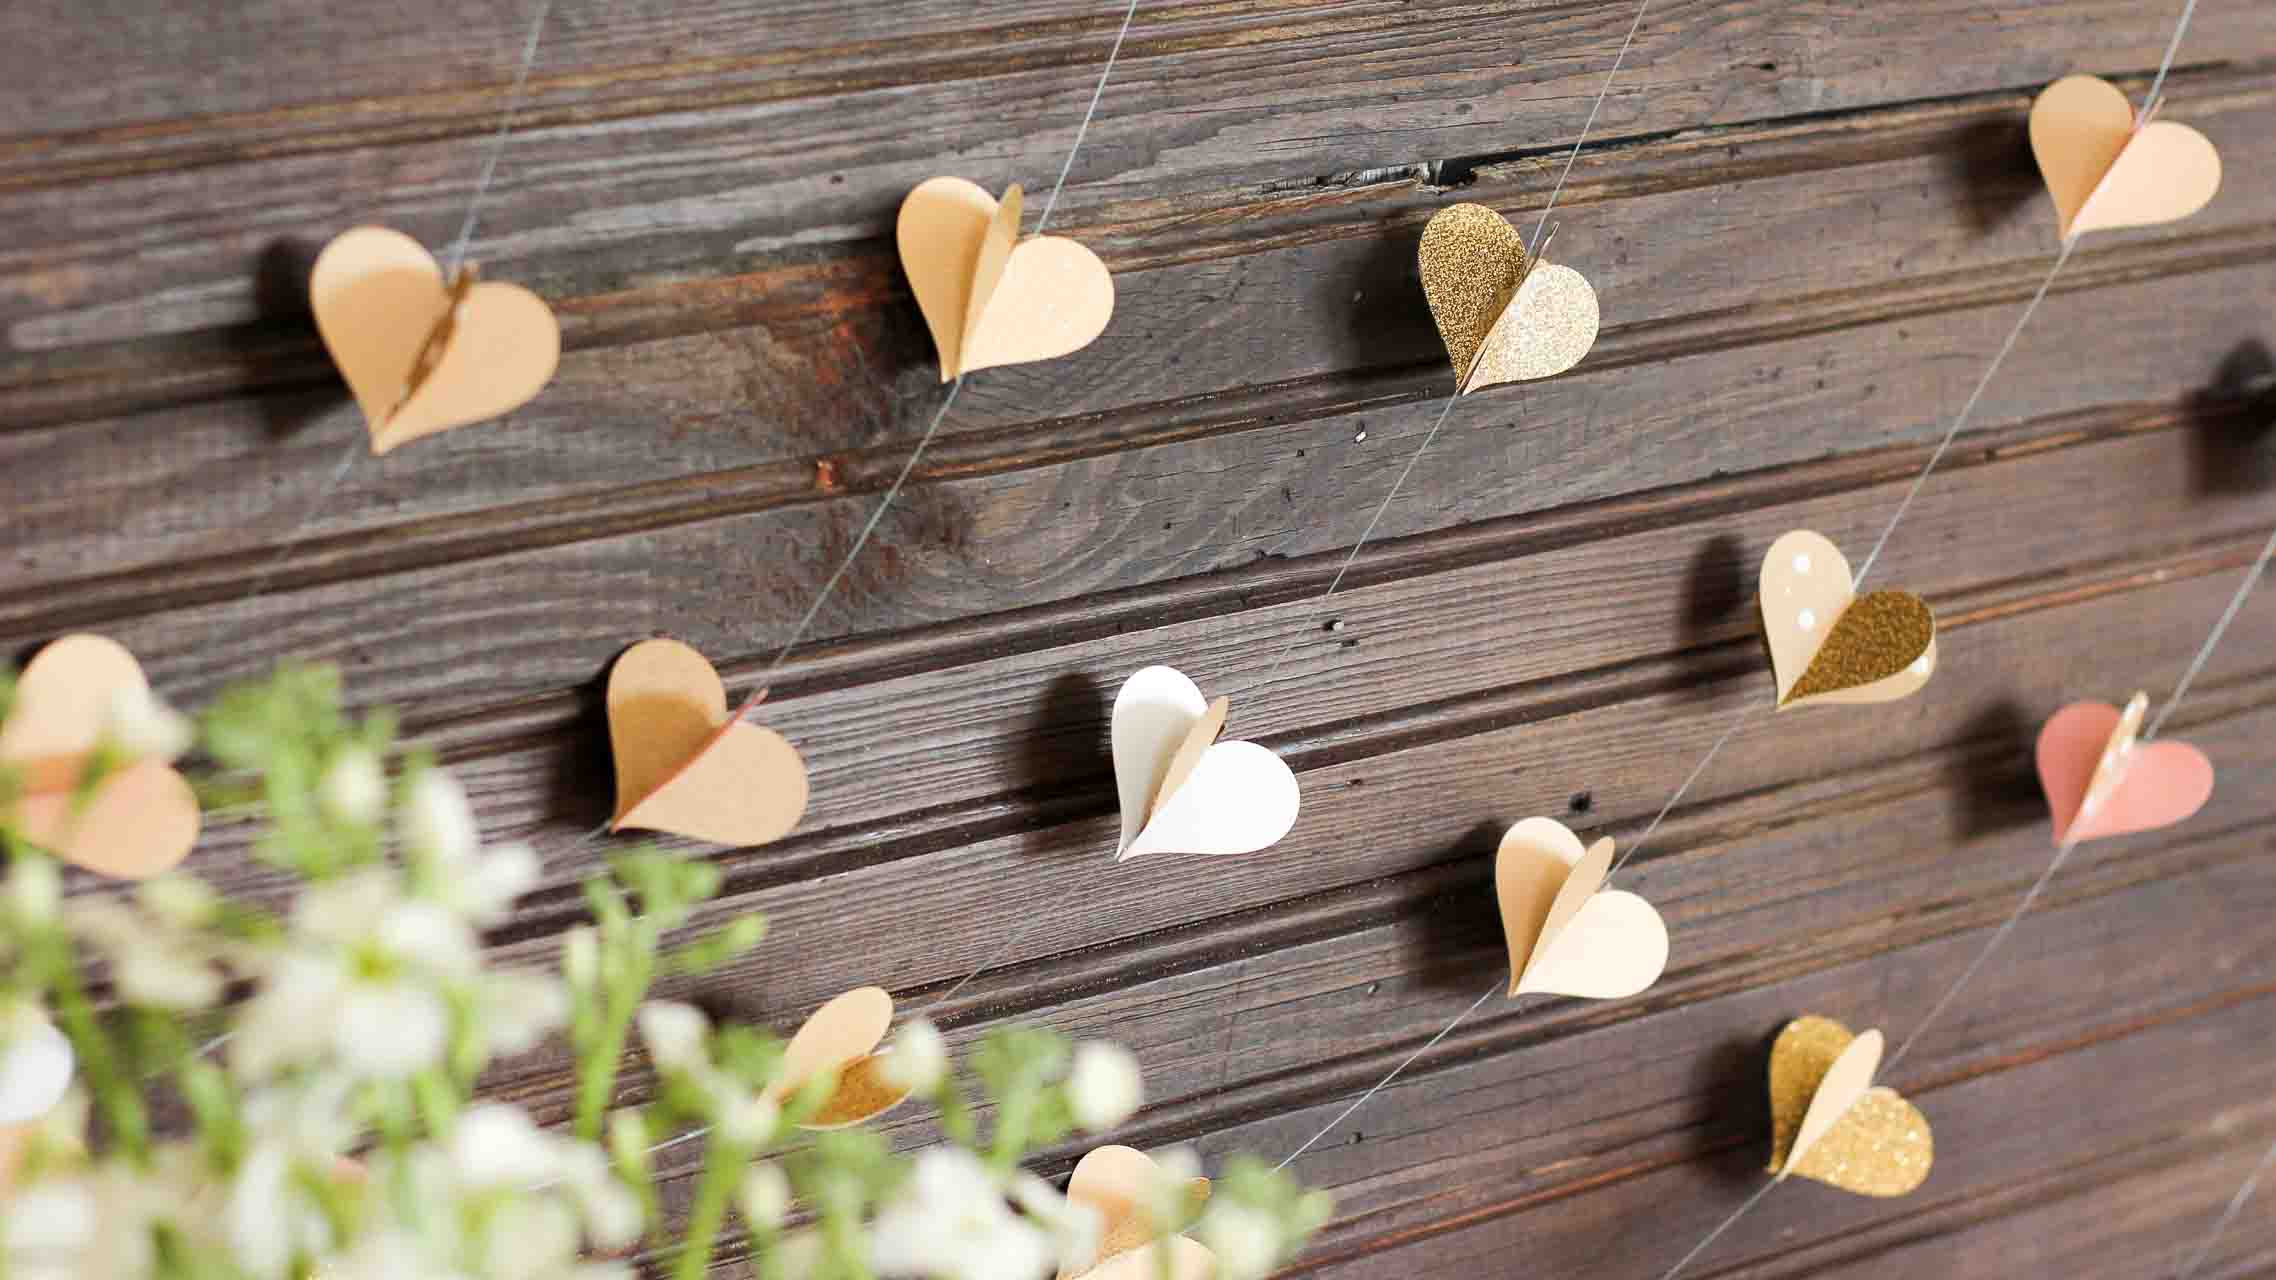 Diy paper heart garland wedding photo booth backdrop solutioingenieria Choice Image